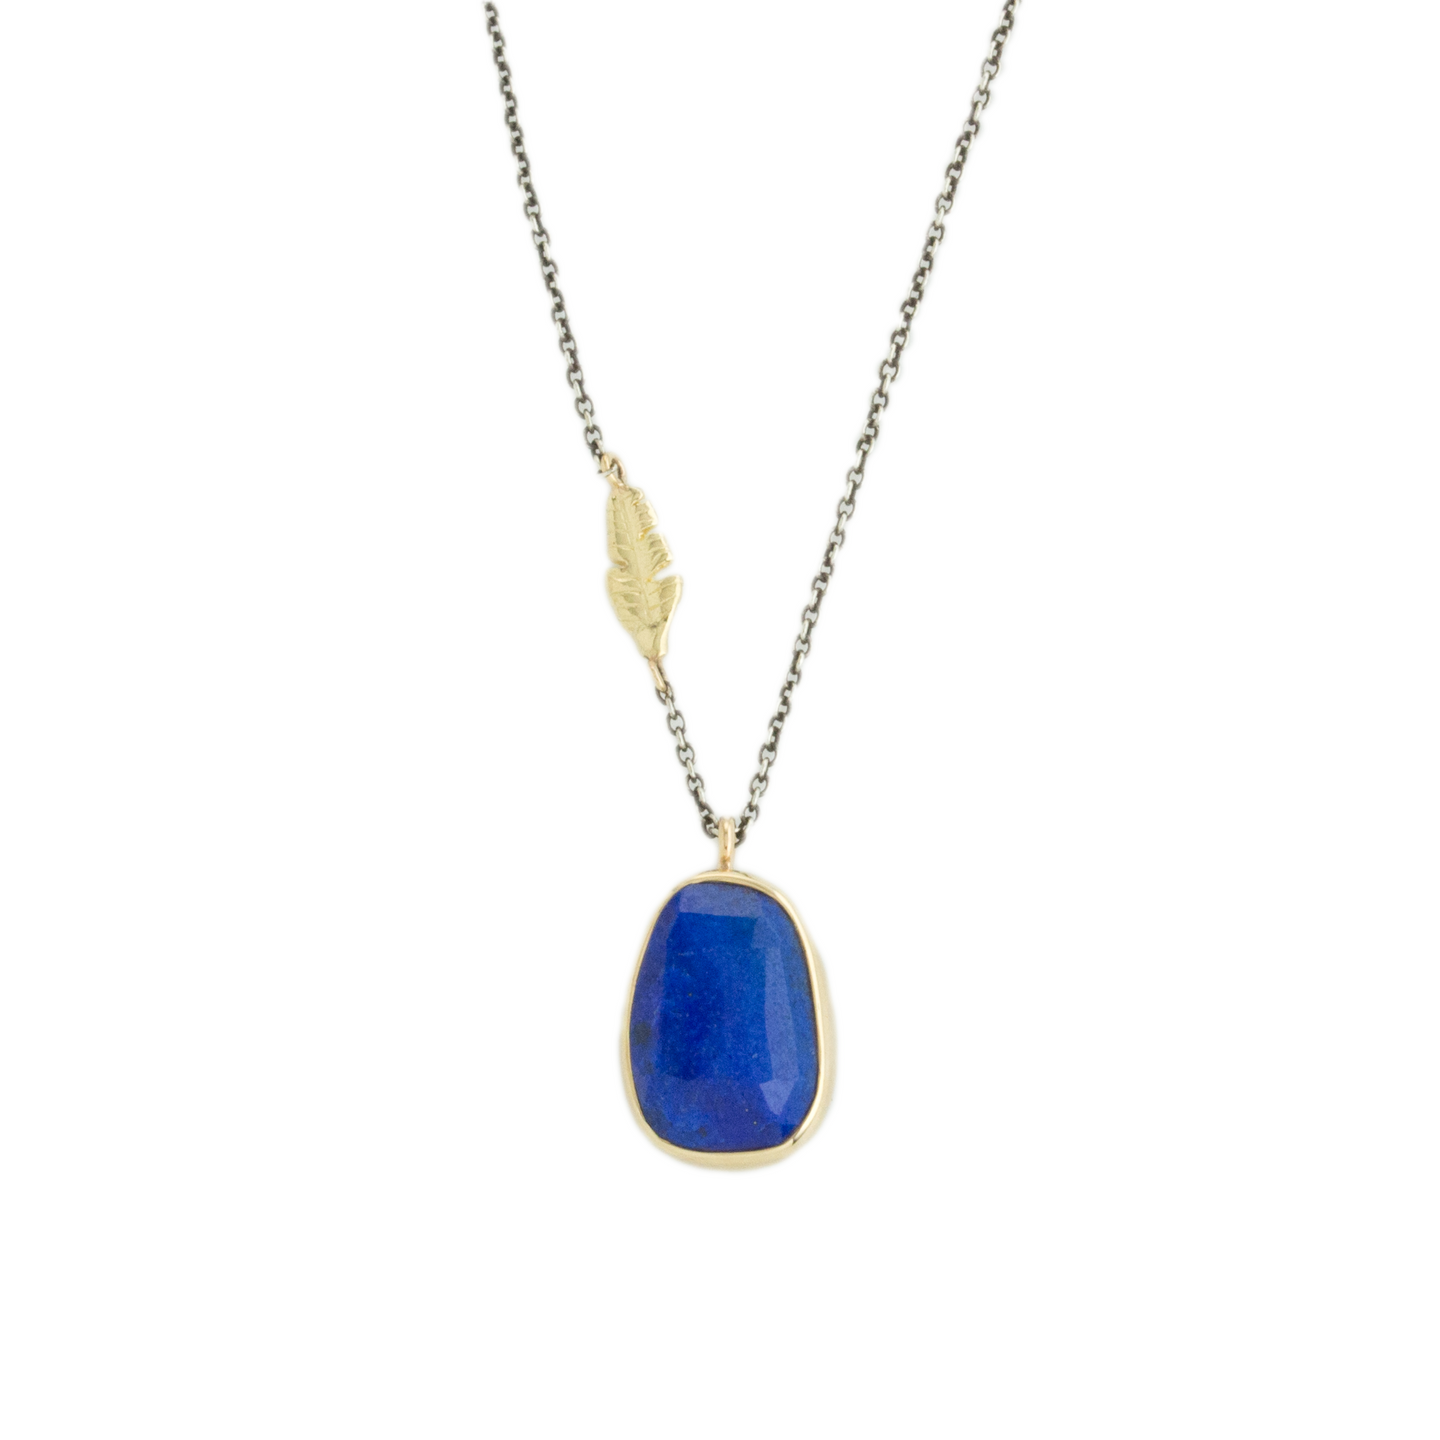 Oxidized Sterling & 14K Gold Lapis Necklace